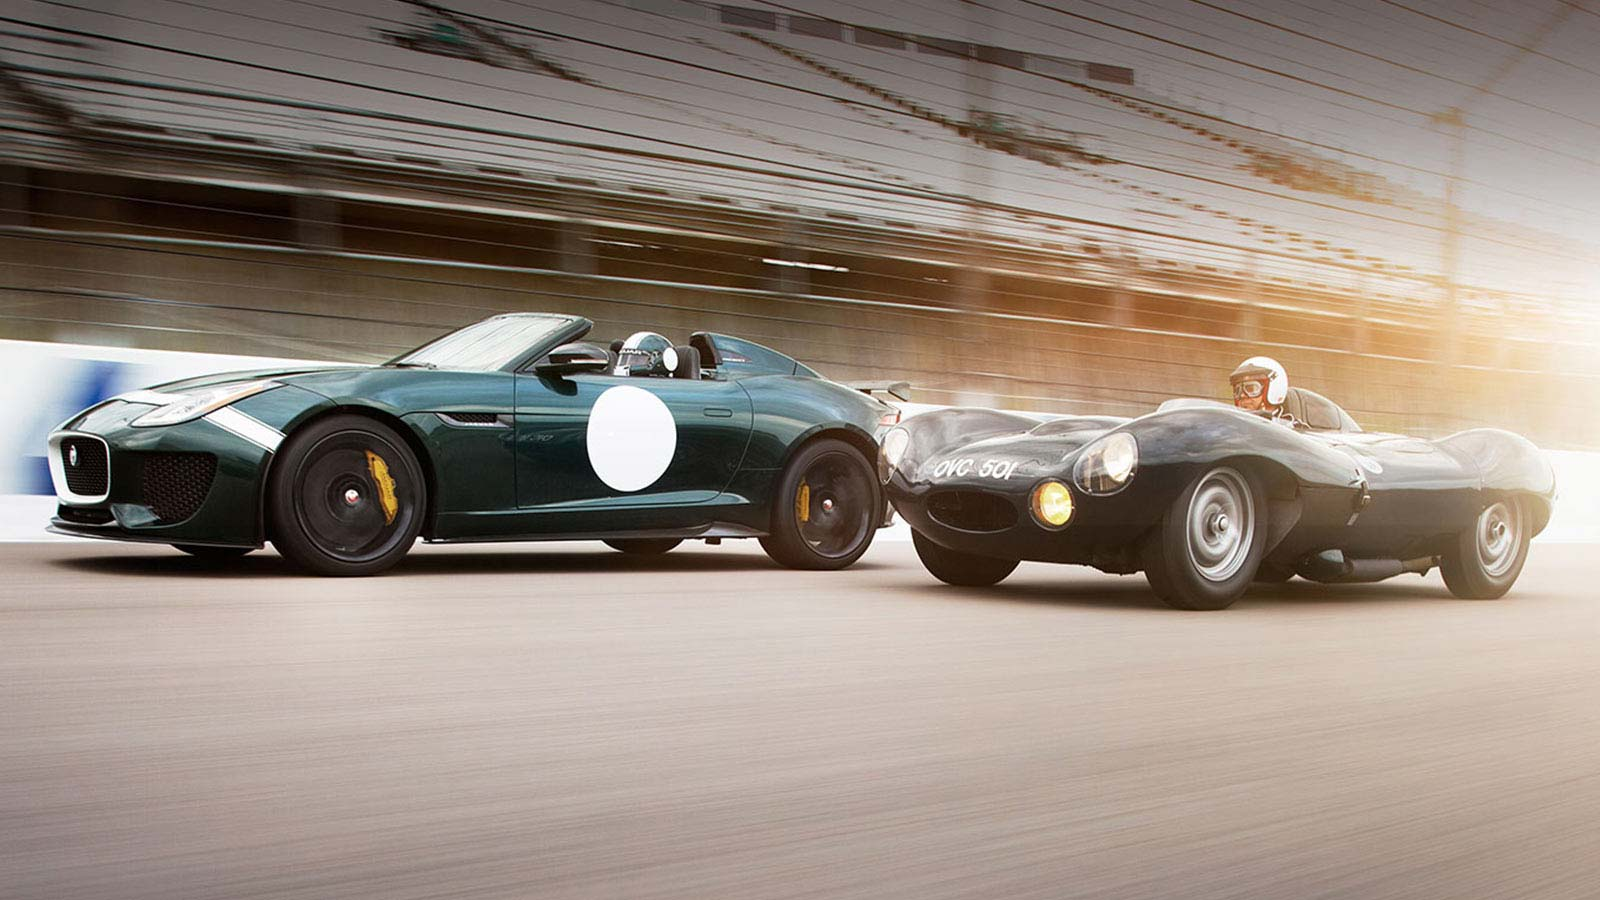 Jaguar F-TYPE Project 7 and Classic D-TYPE racing together.